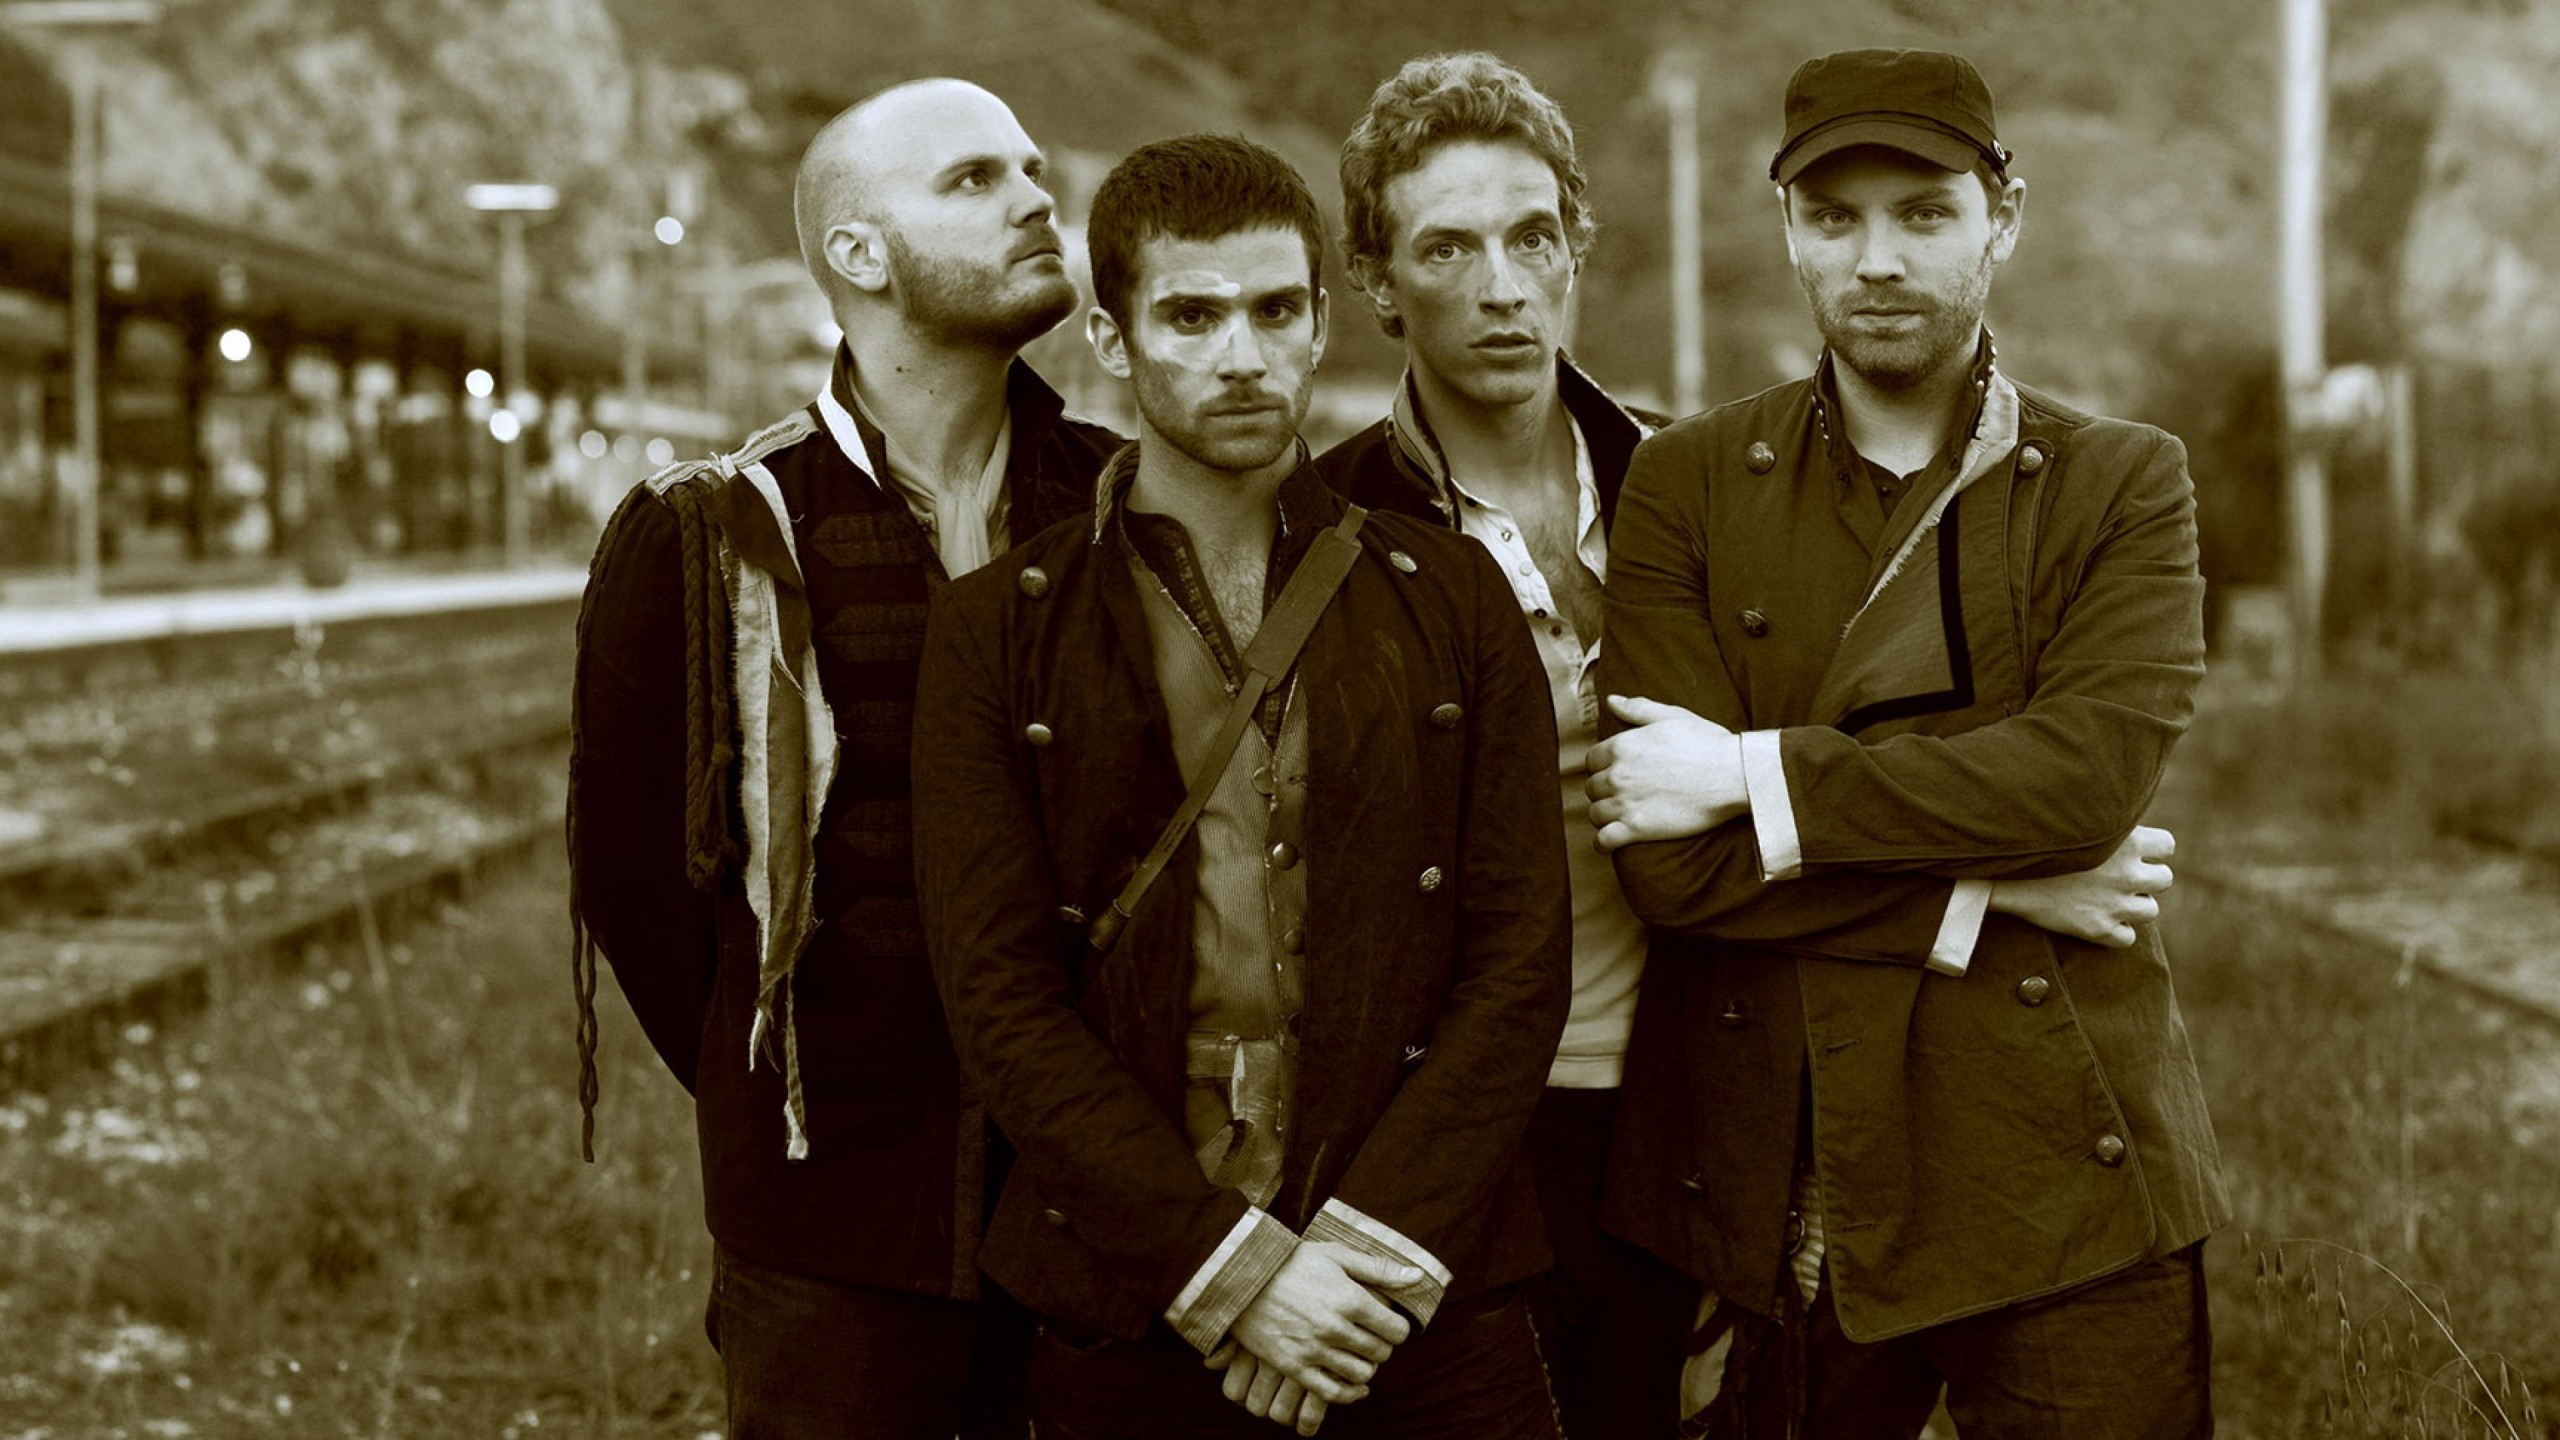 Coldplay Band Sepia Wallpaper for Desktop 2560x1440